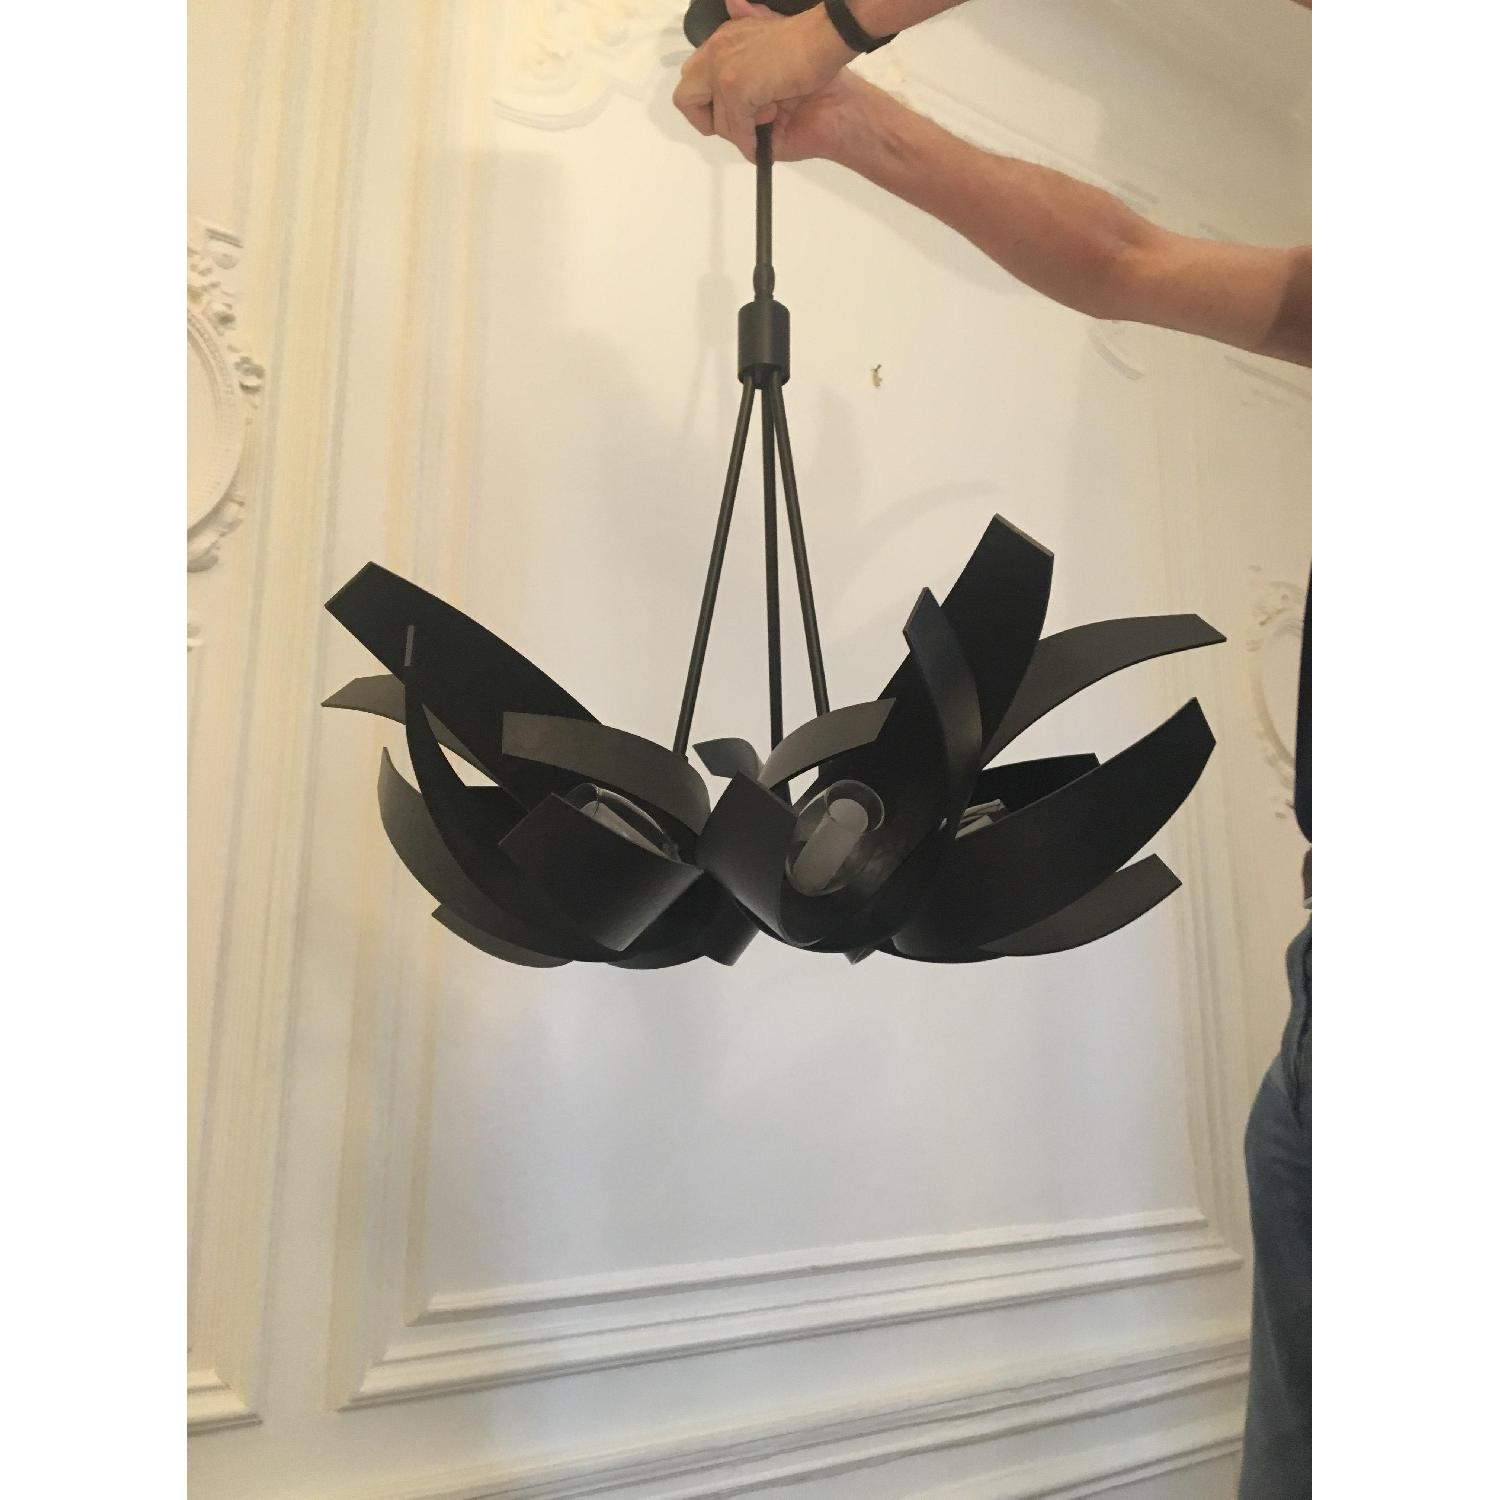 Hubbardton Forge Handcrafted Forged Steel Chandelier-1